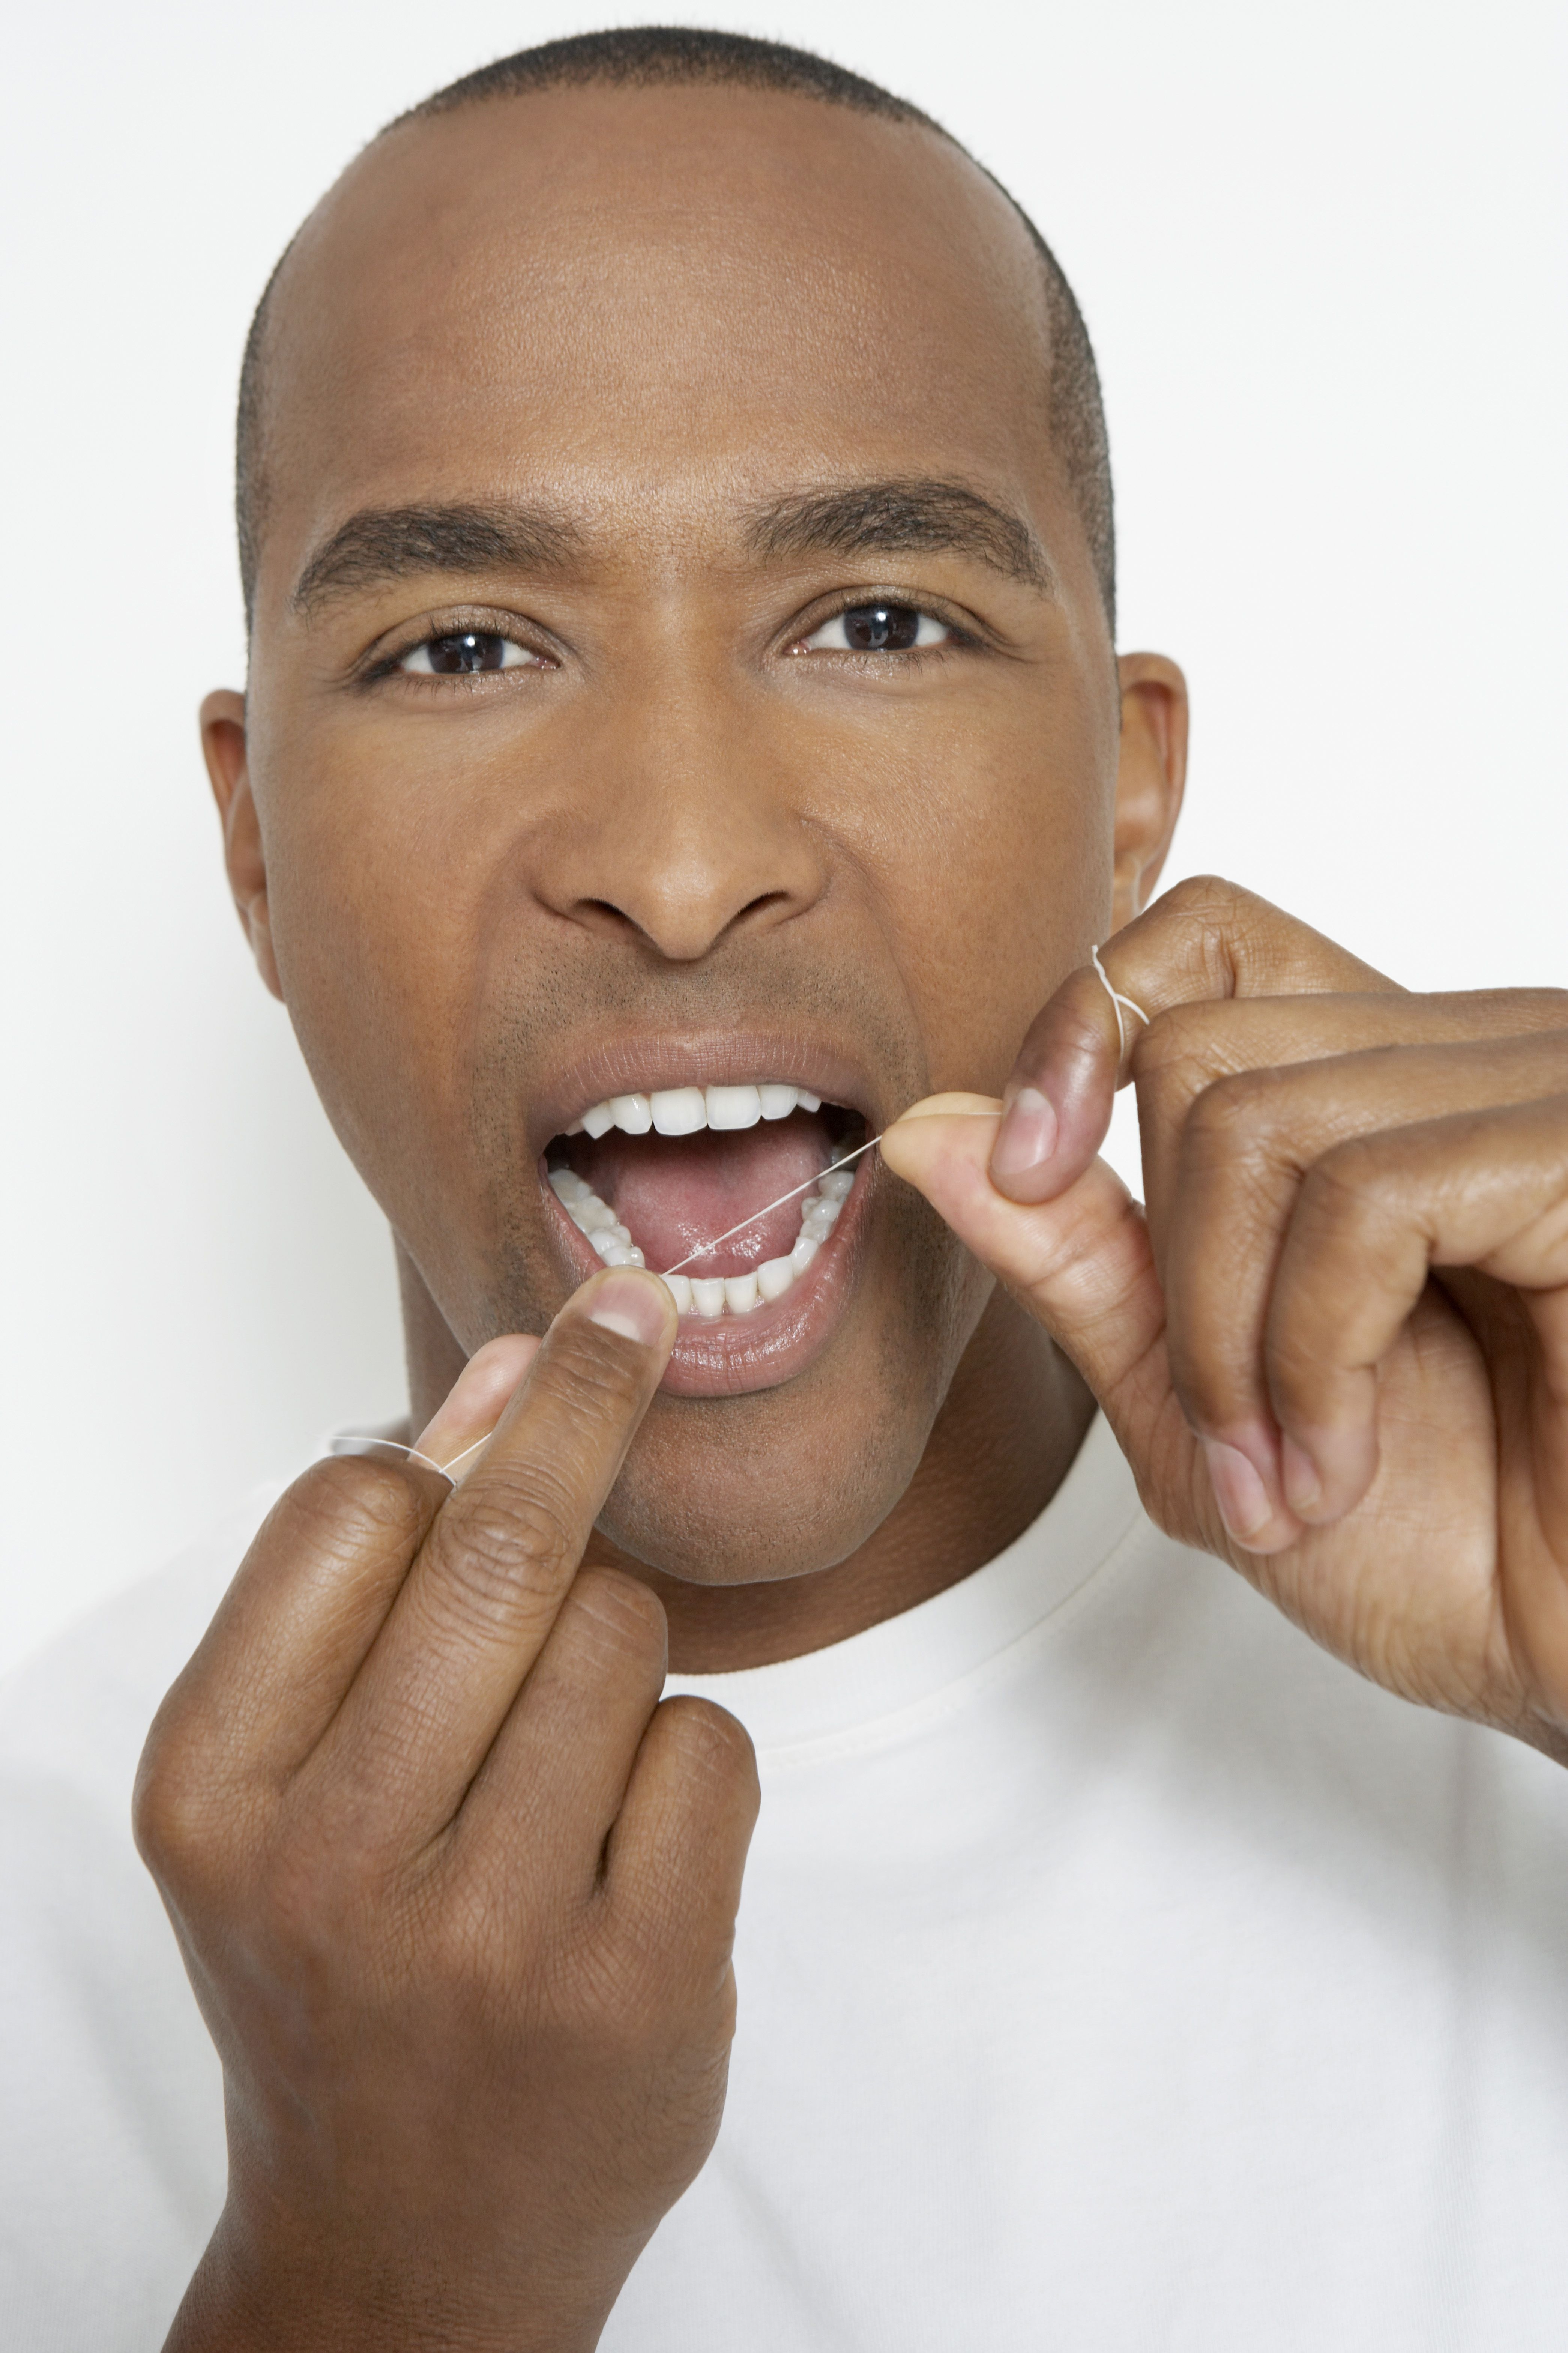 Attractive young man flossing teeth